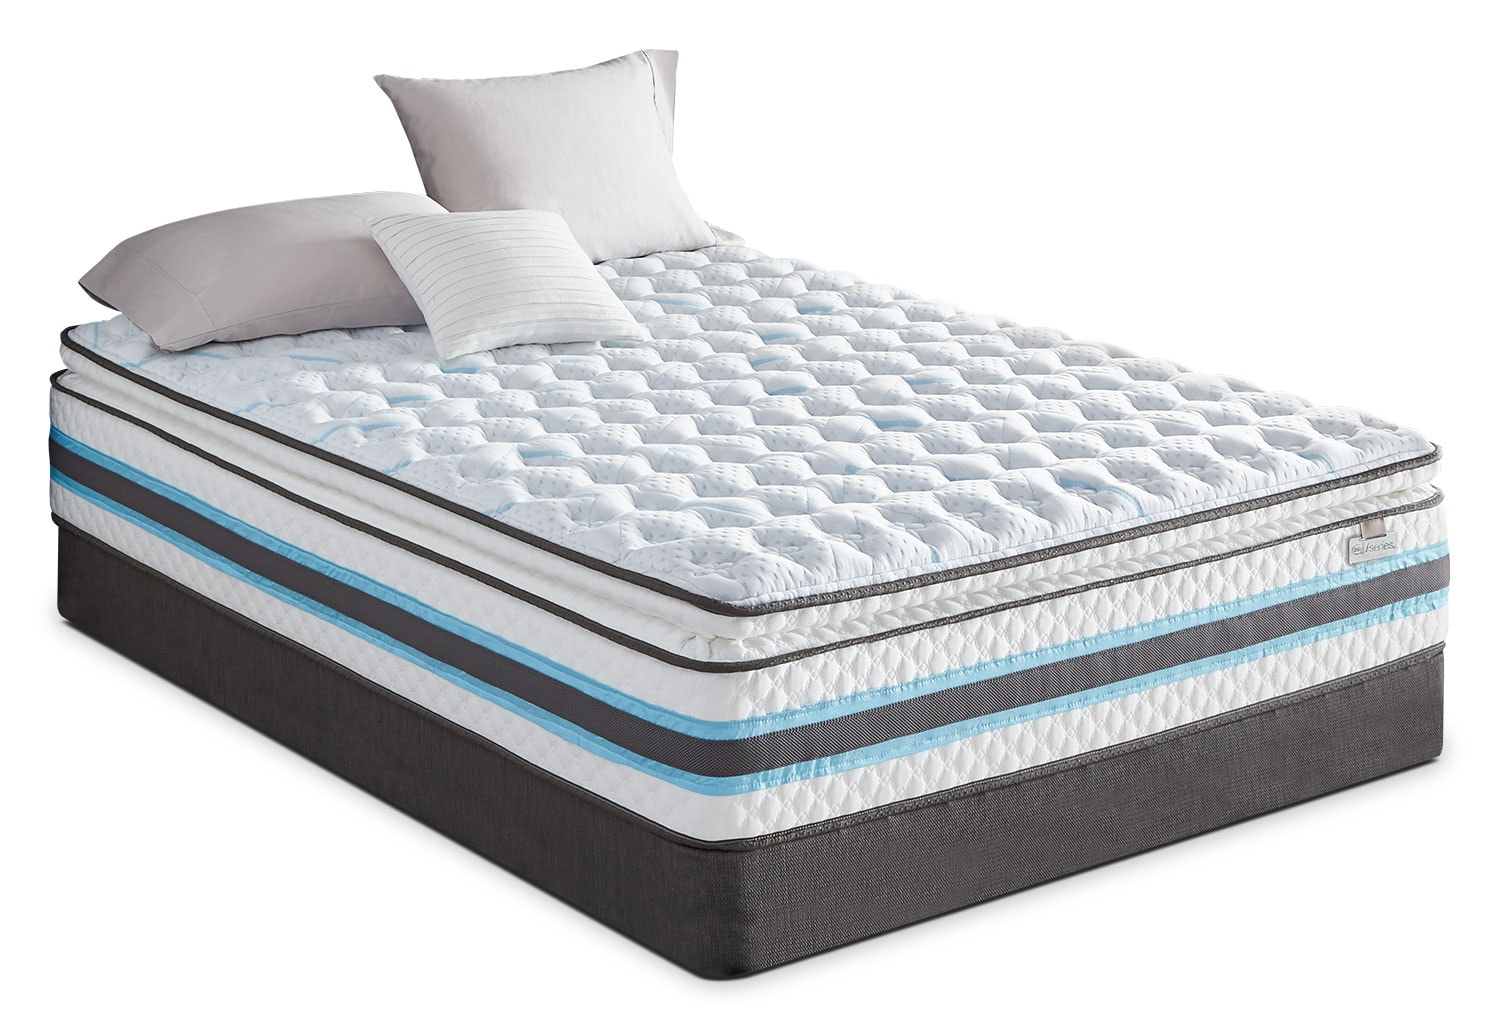 Serta iSeries® Breathtaking Pillow-Top Firm Full Mattress Set